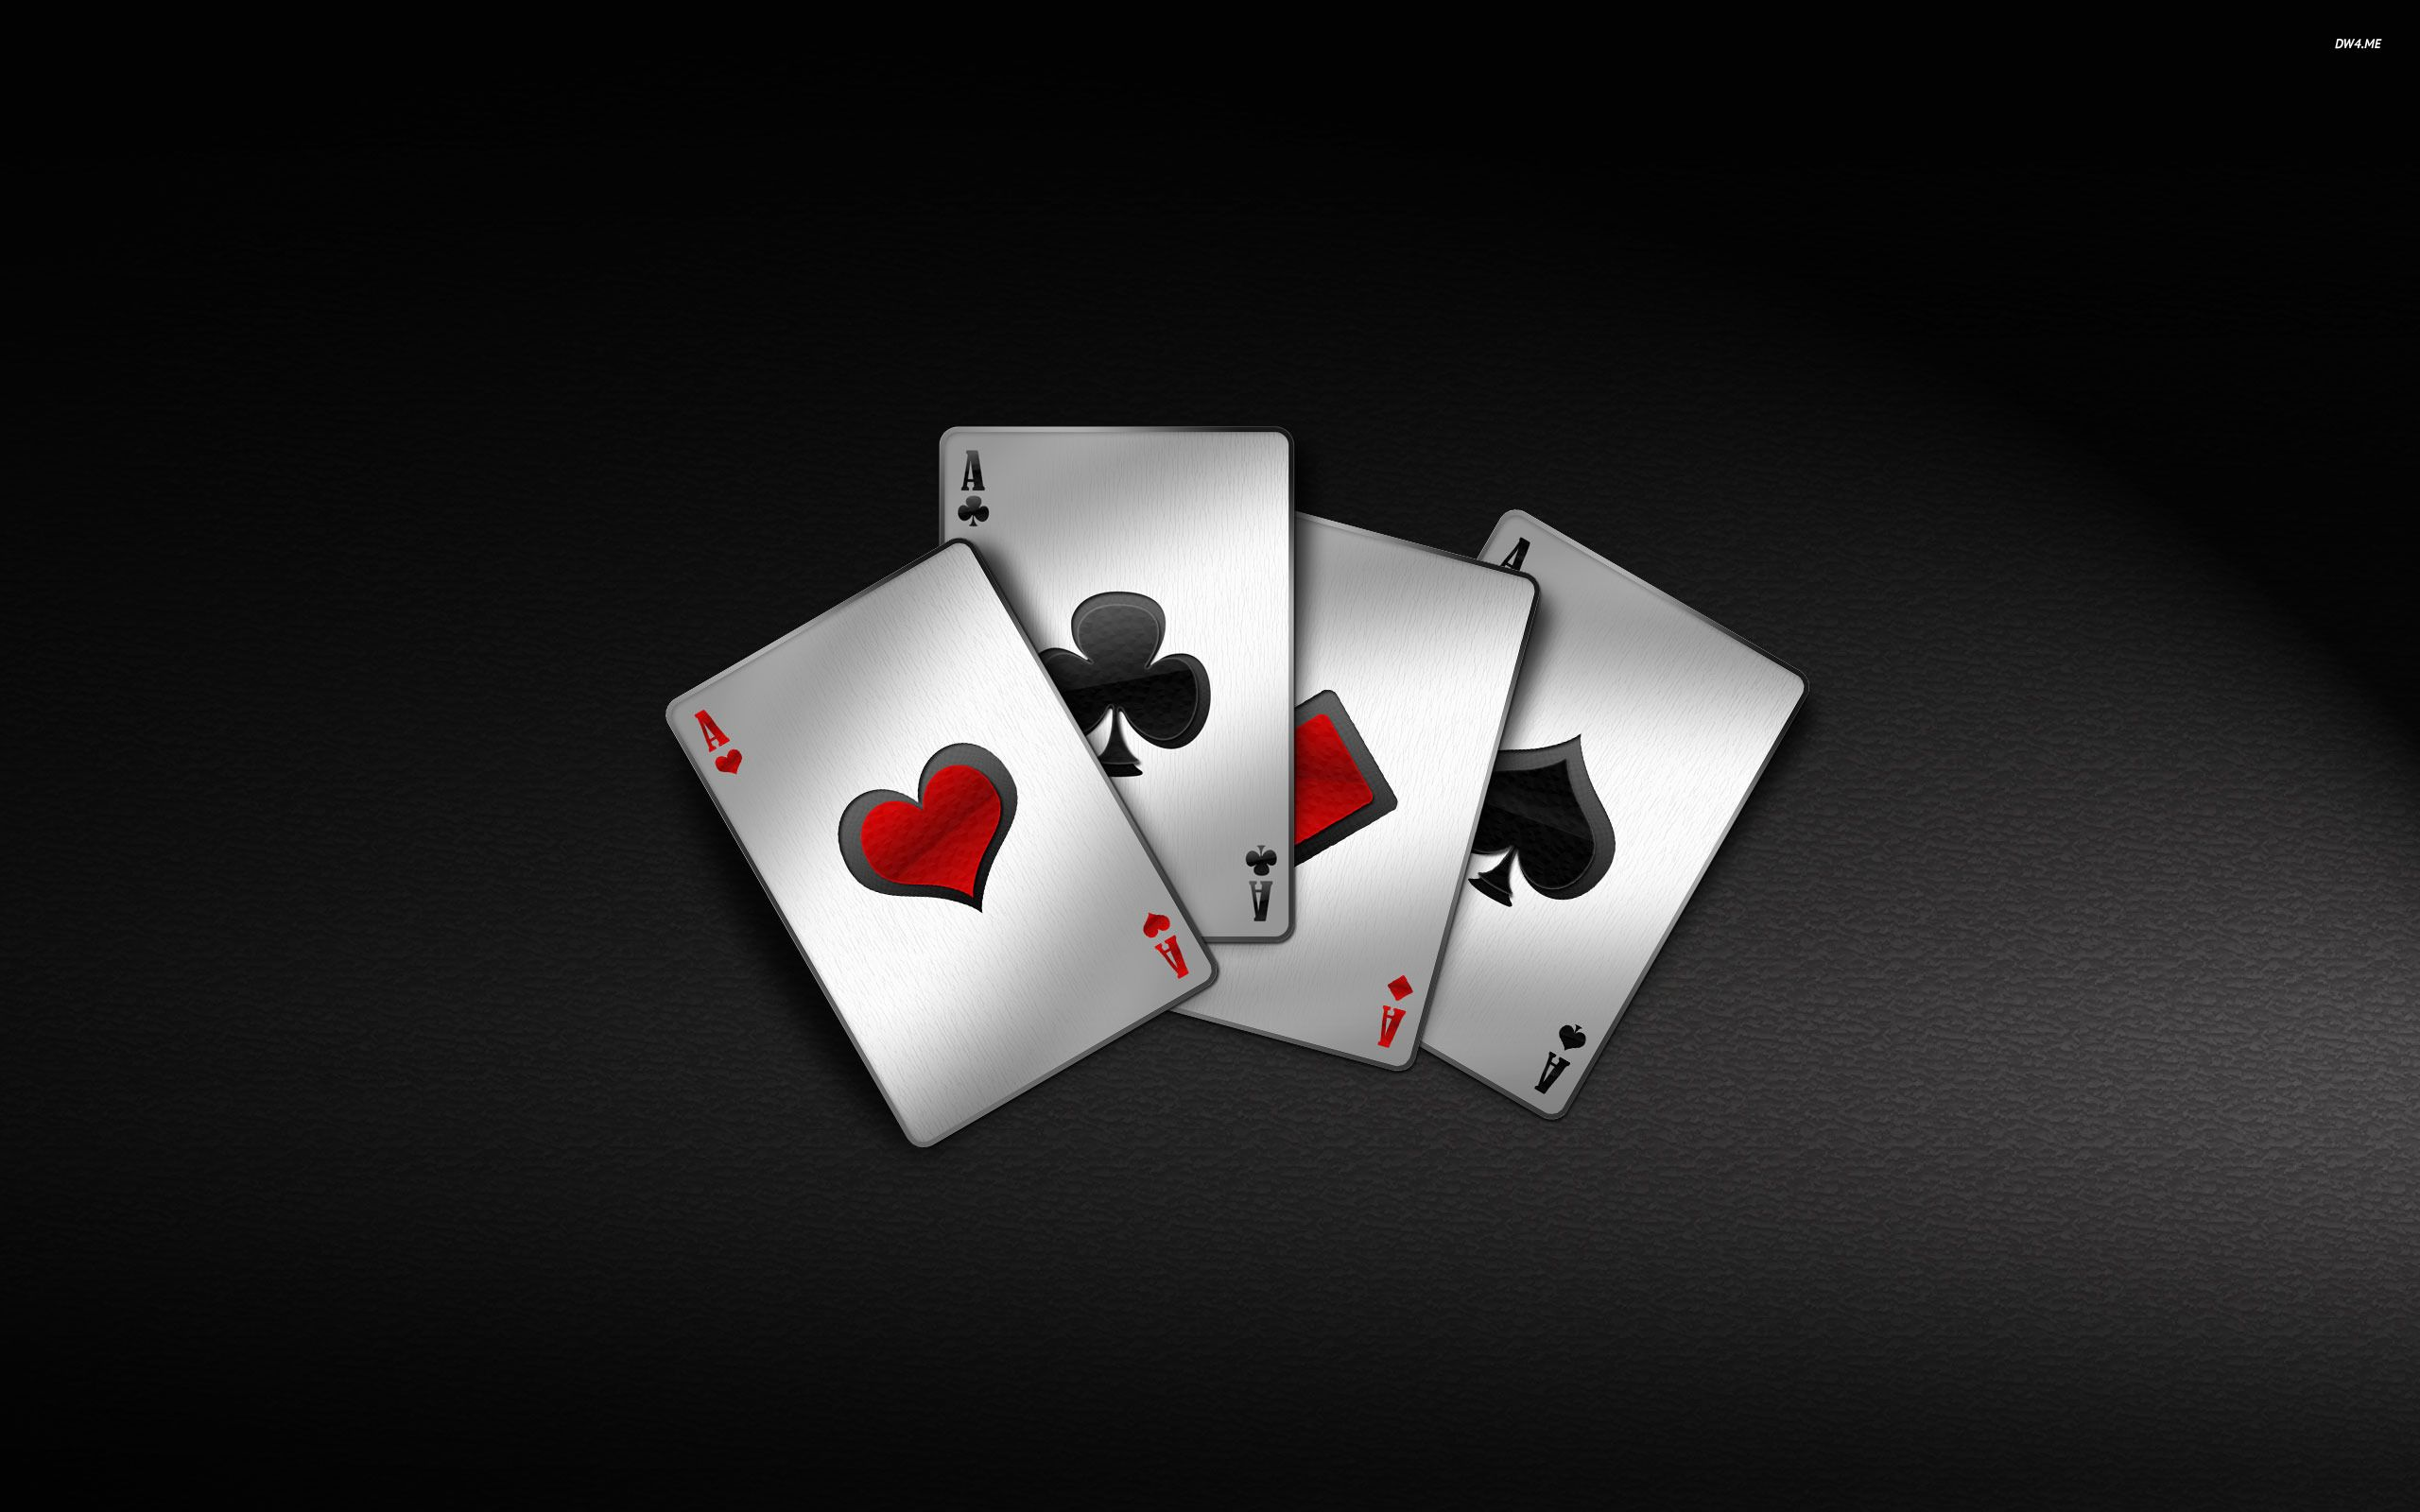 Playing Cards Wallpaper 1920x1080 Wallpapersafari Poker Kartu